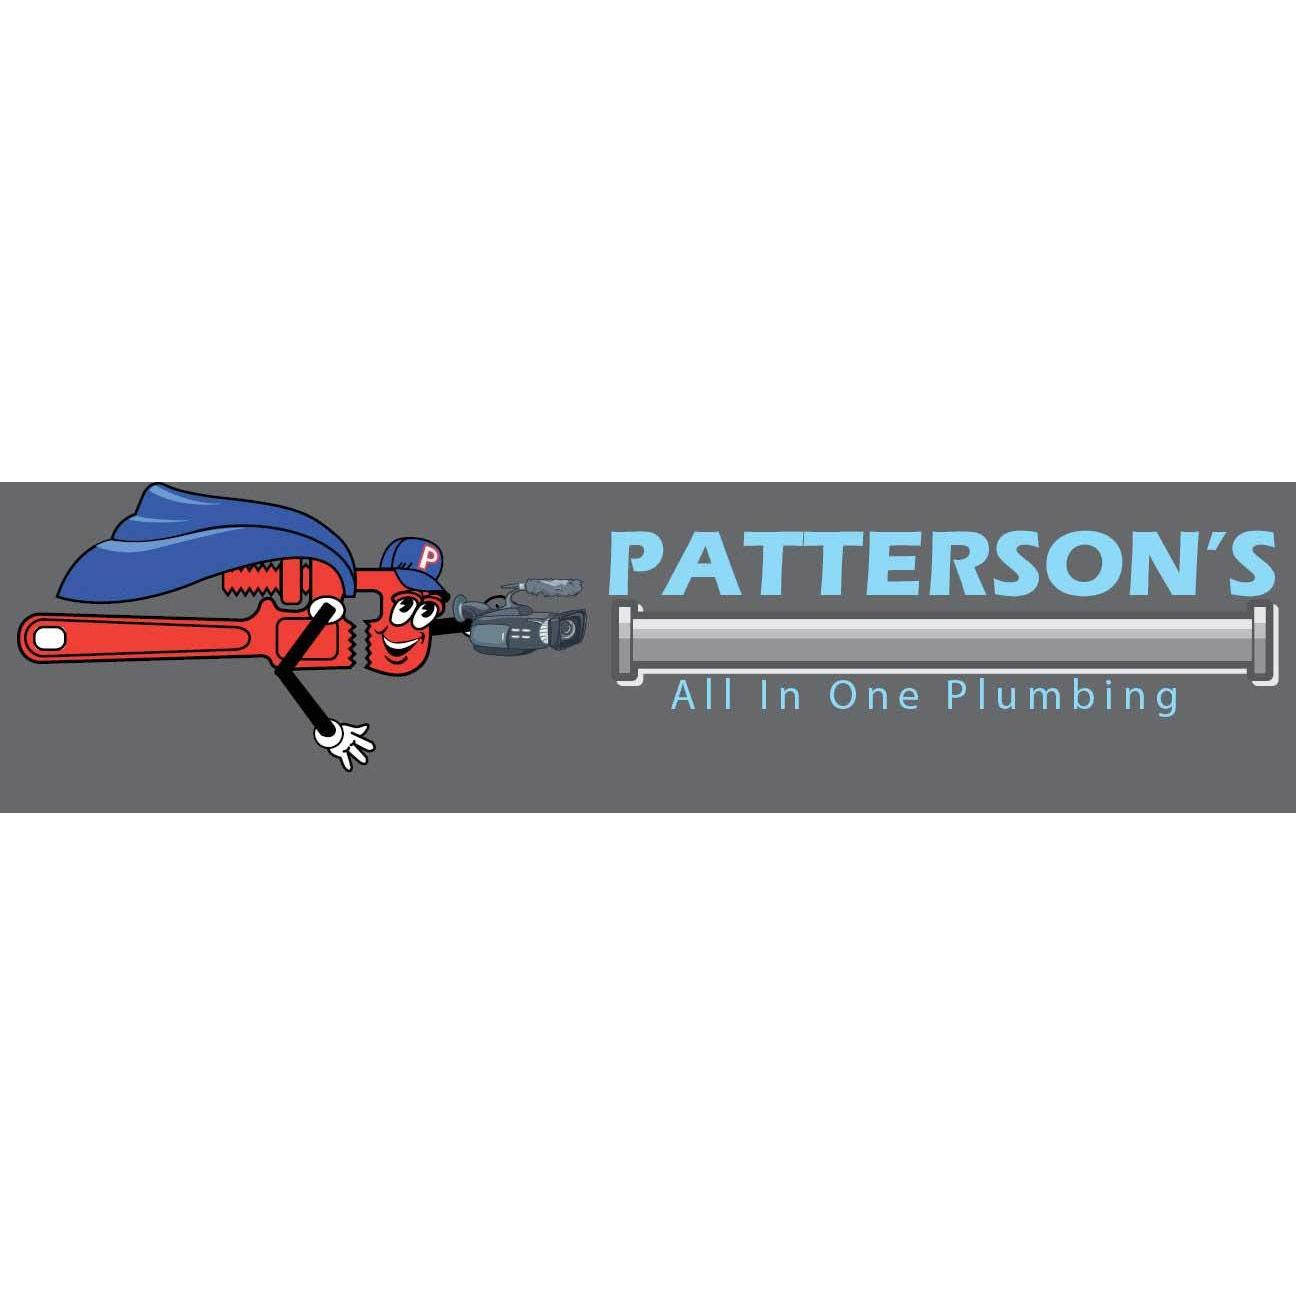 Patterson's All-In-One Plumbing